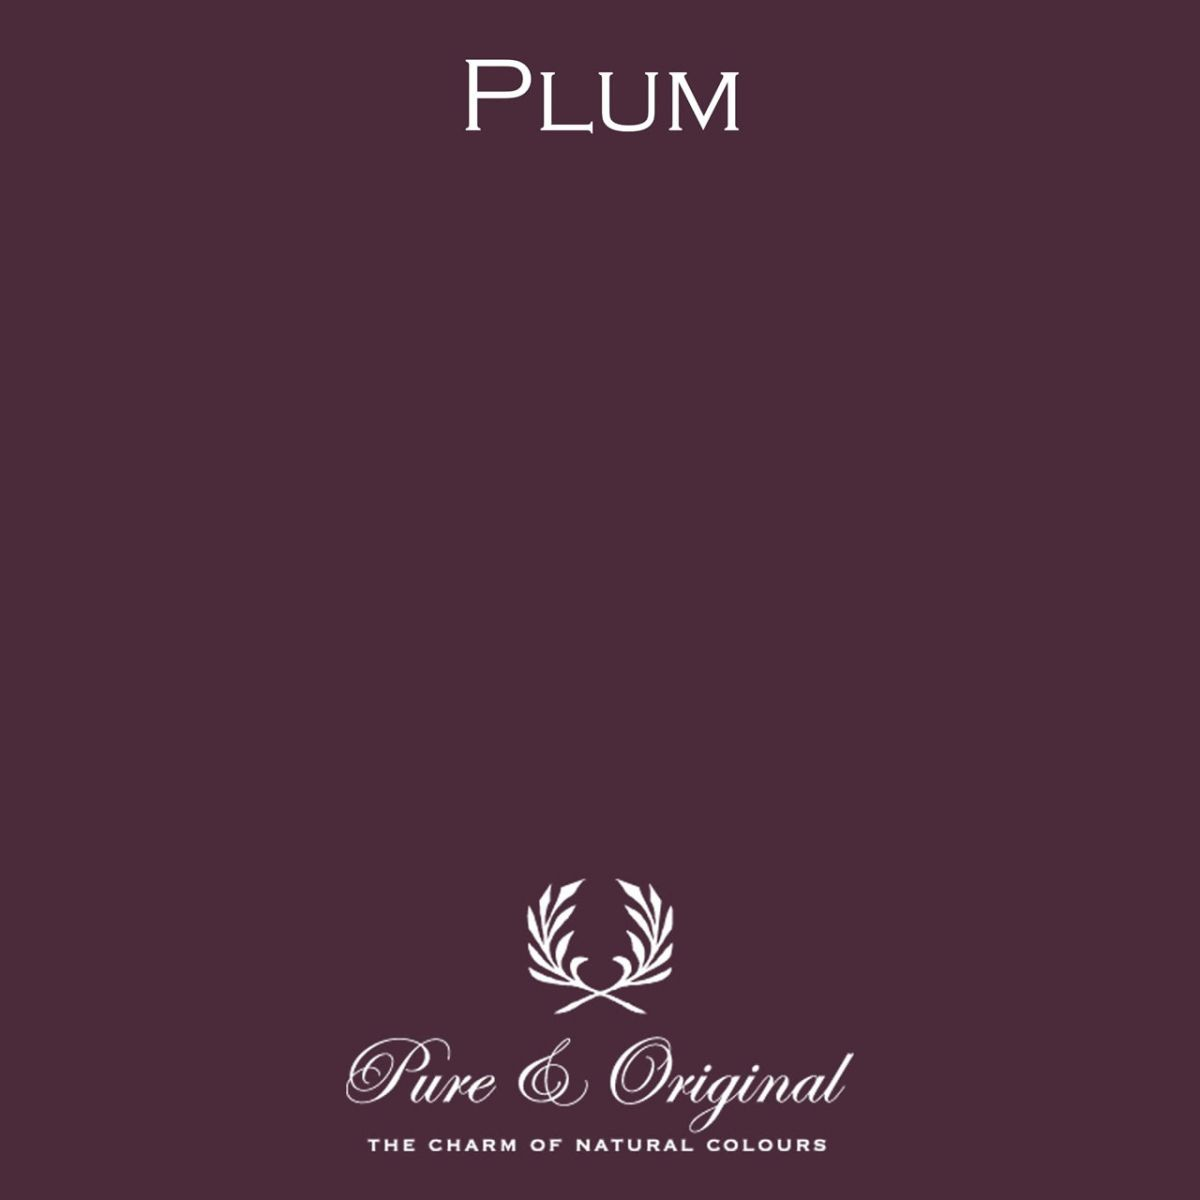 Pure & Original colour Plum